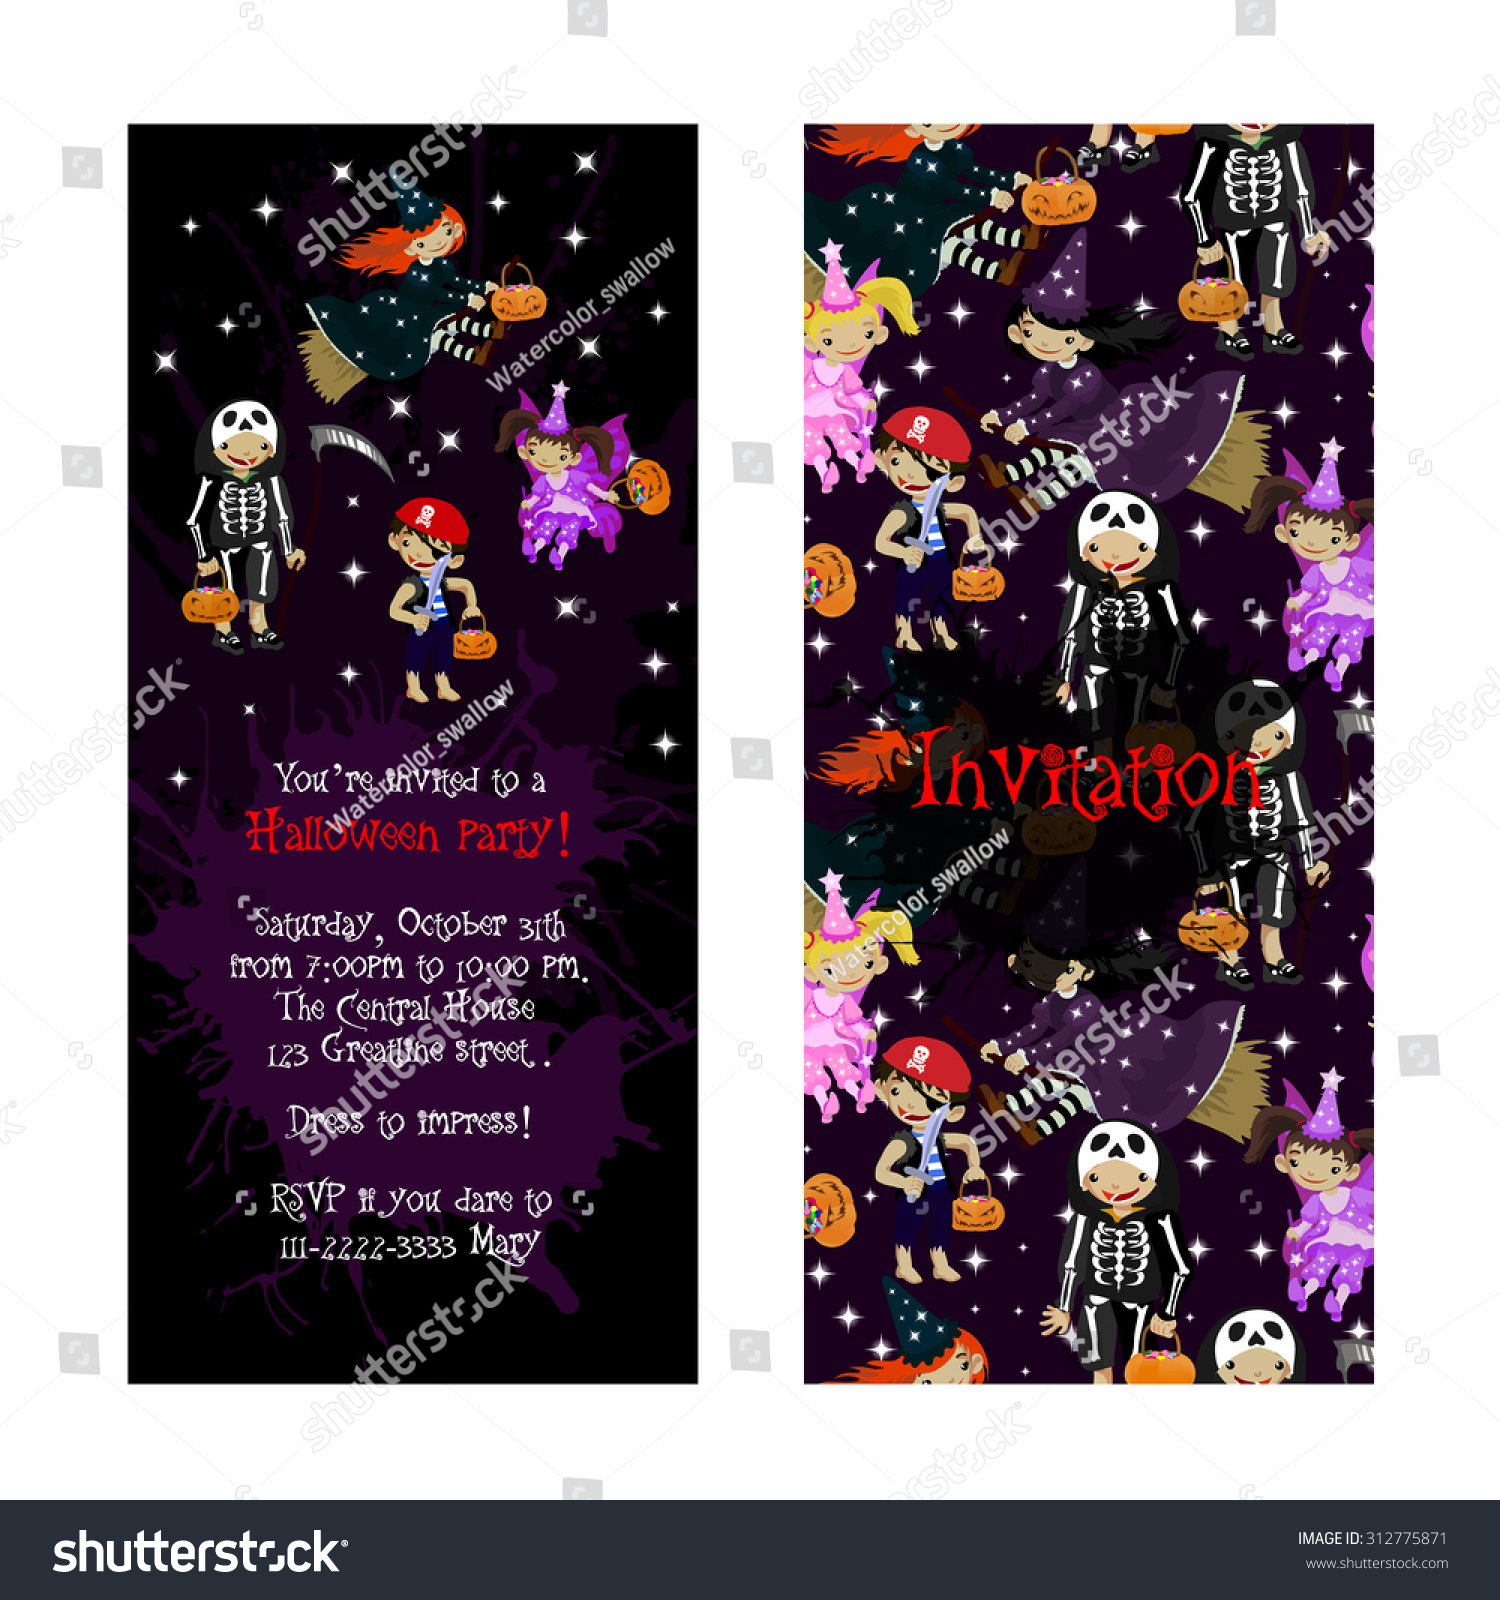 Cute Invitation For Kids Halloween Party. Illustration Of Fairy ...